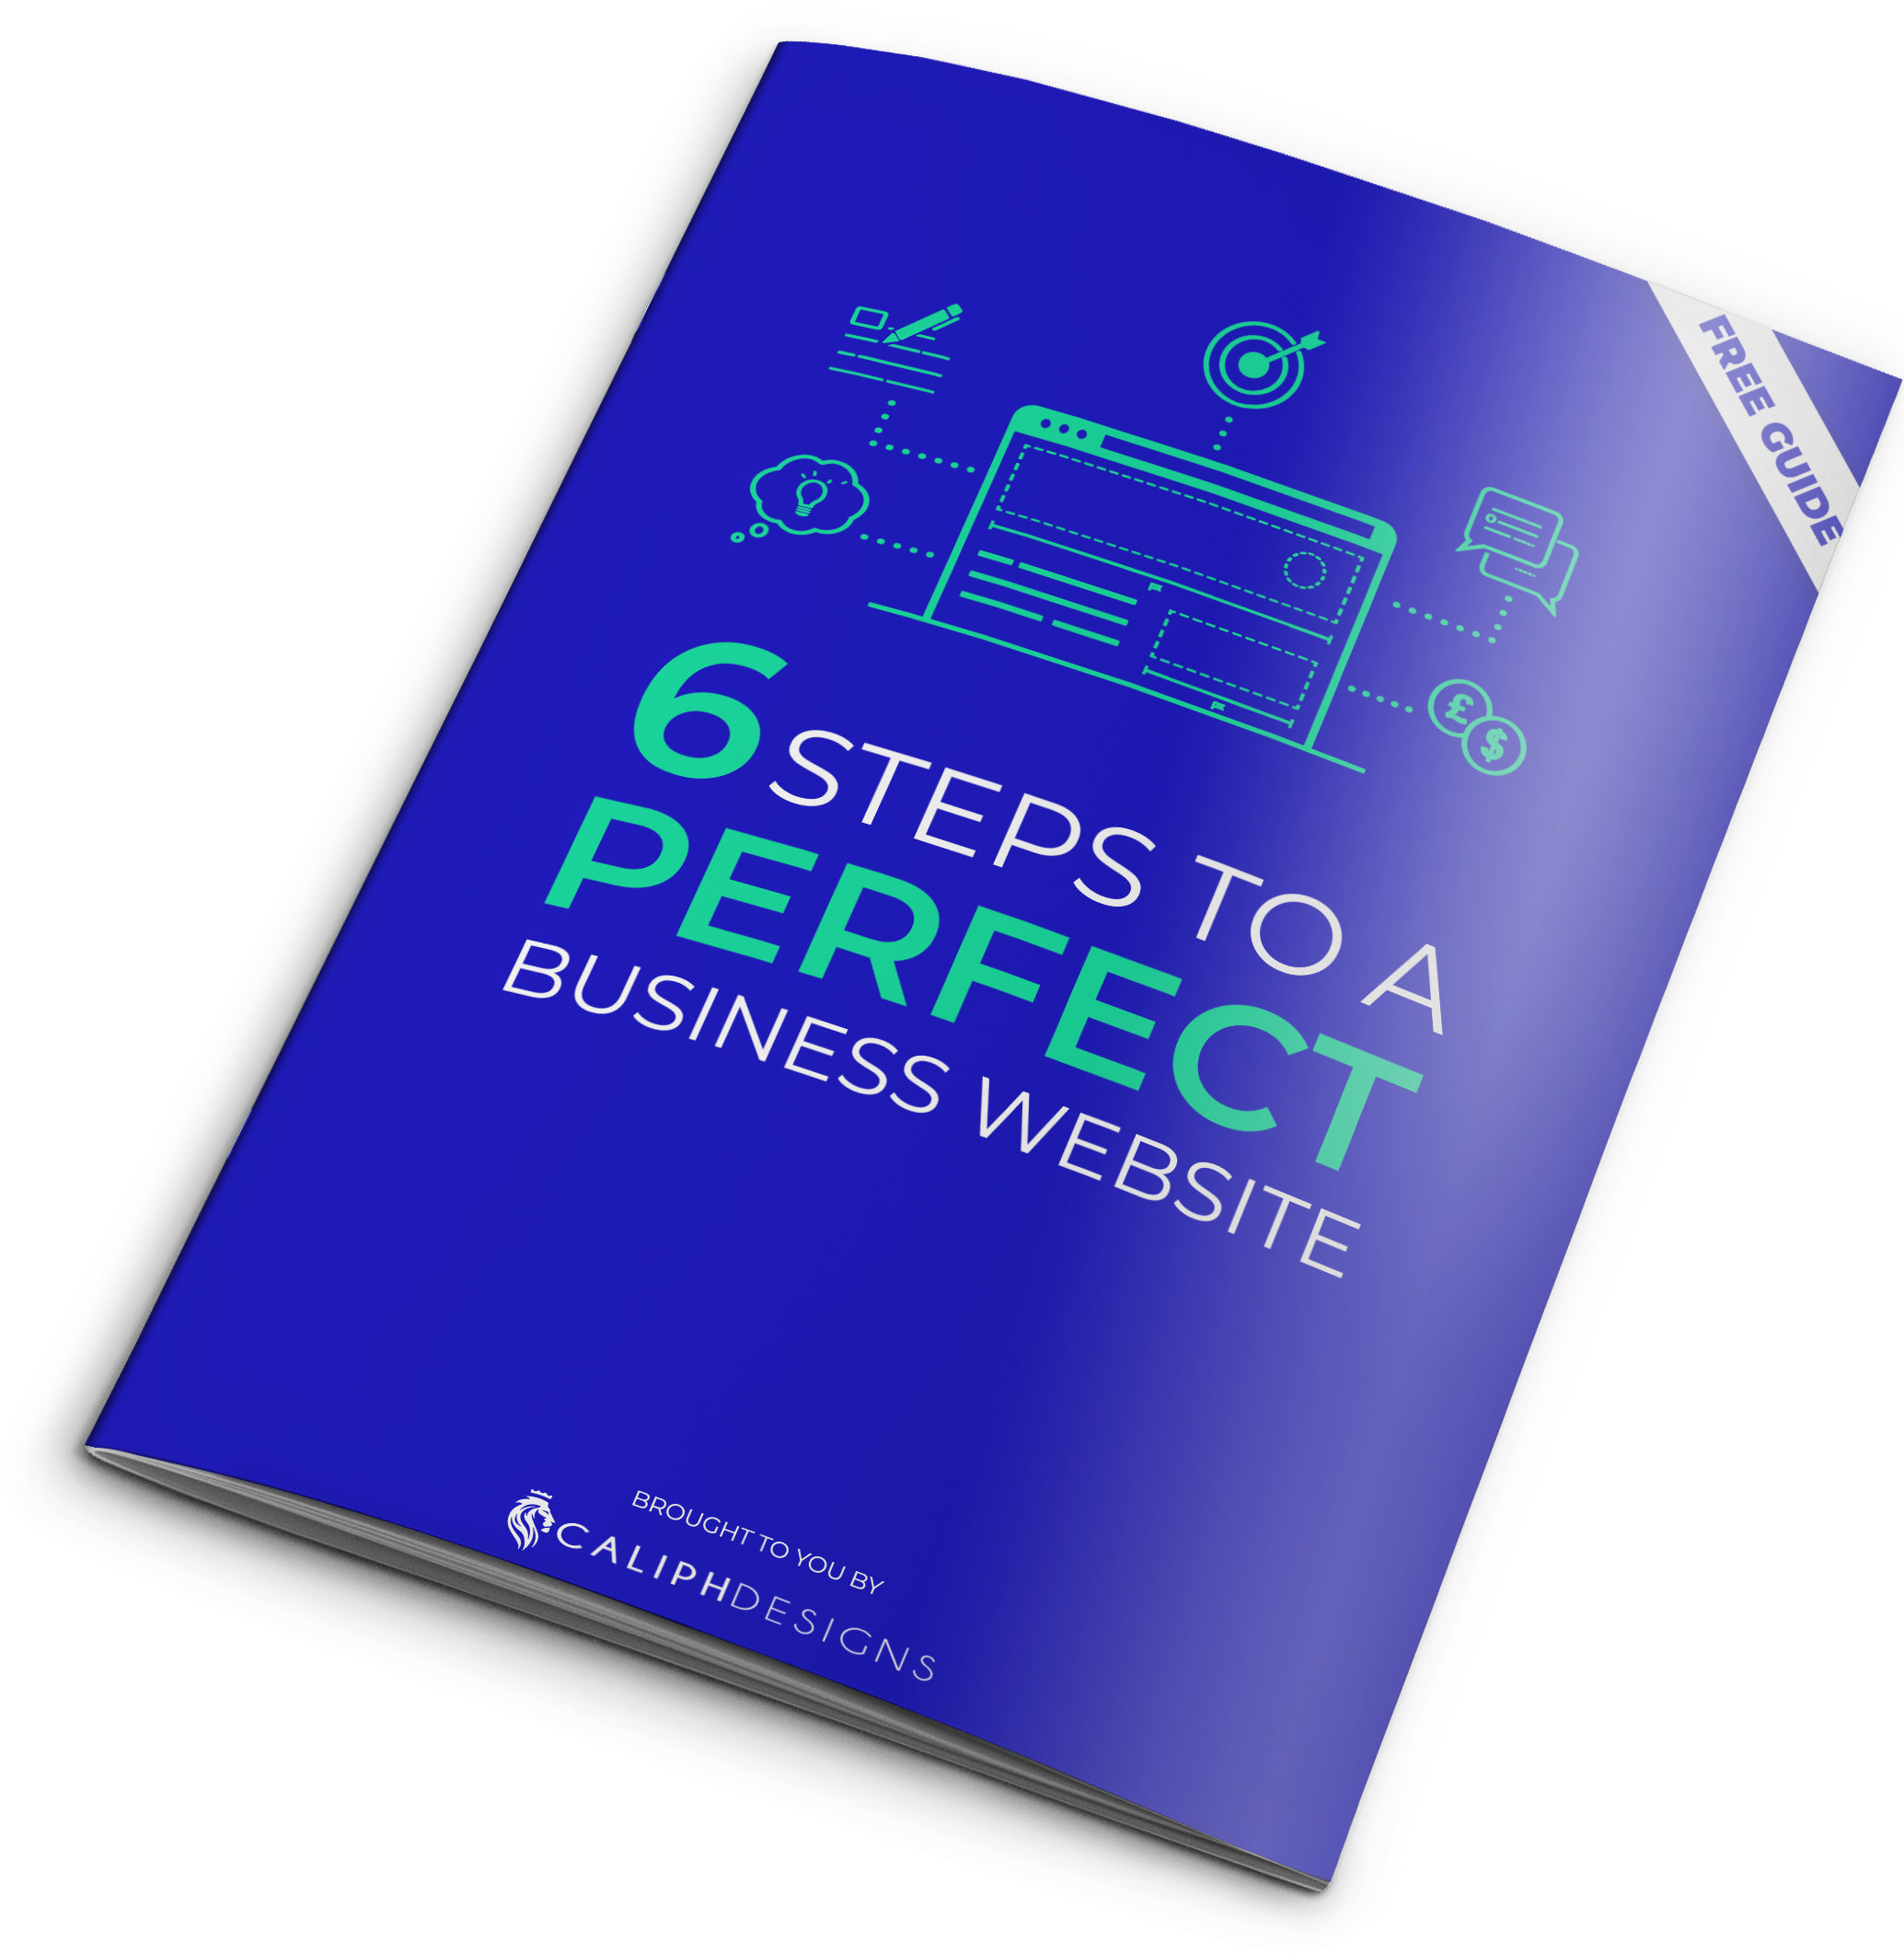 perfect business website book